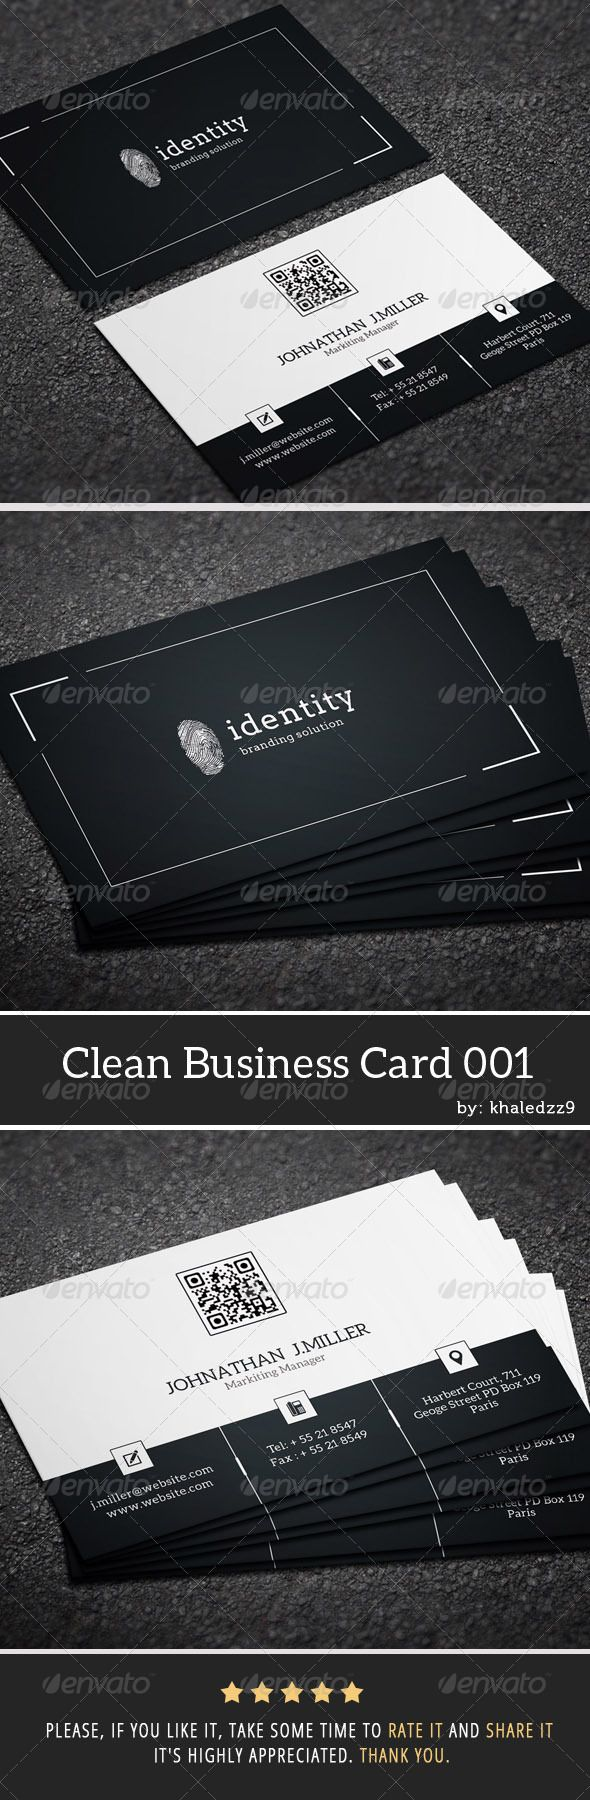 26 best design business cards images on pinterest card clean business card 001 magicingreecefo Choice Image